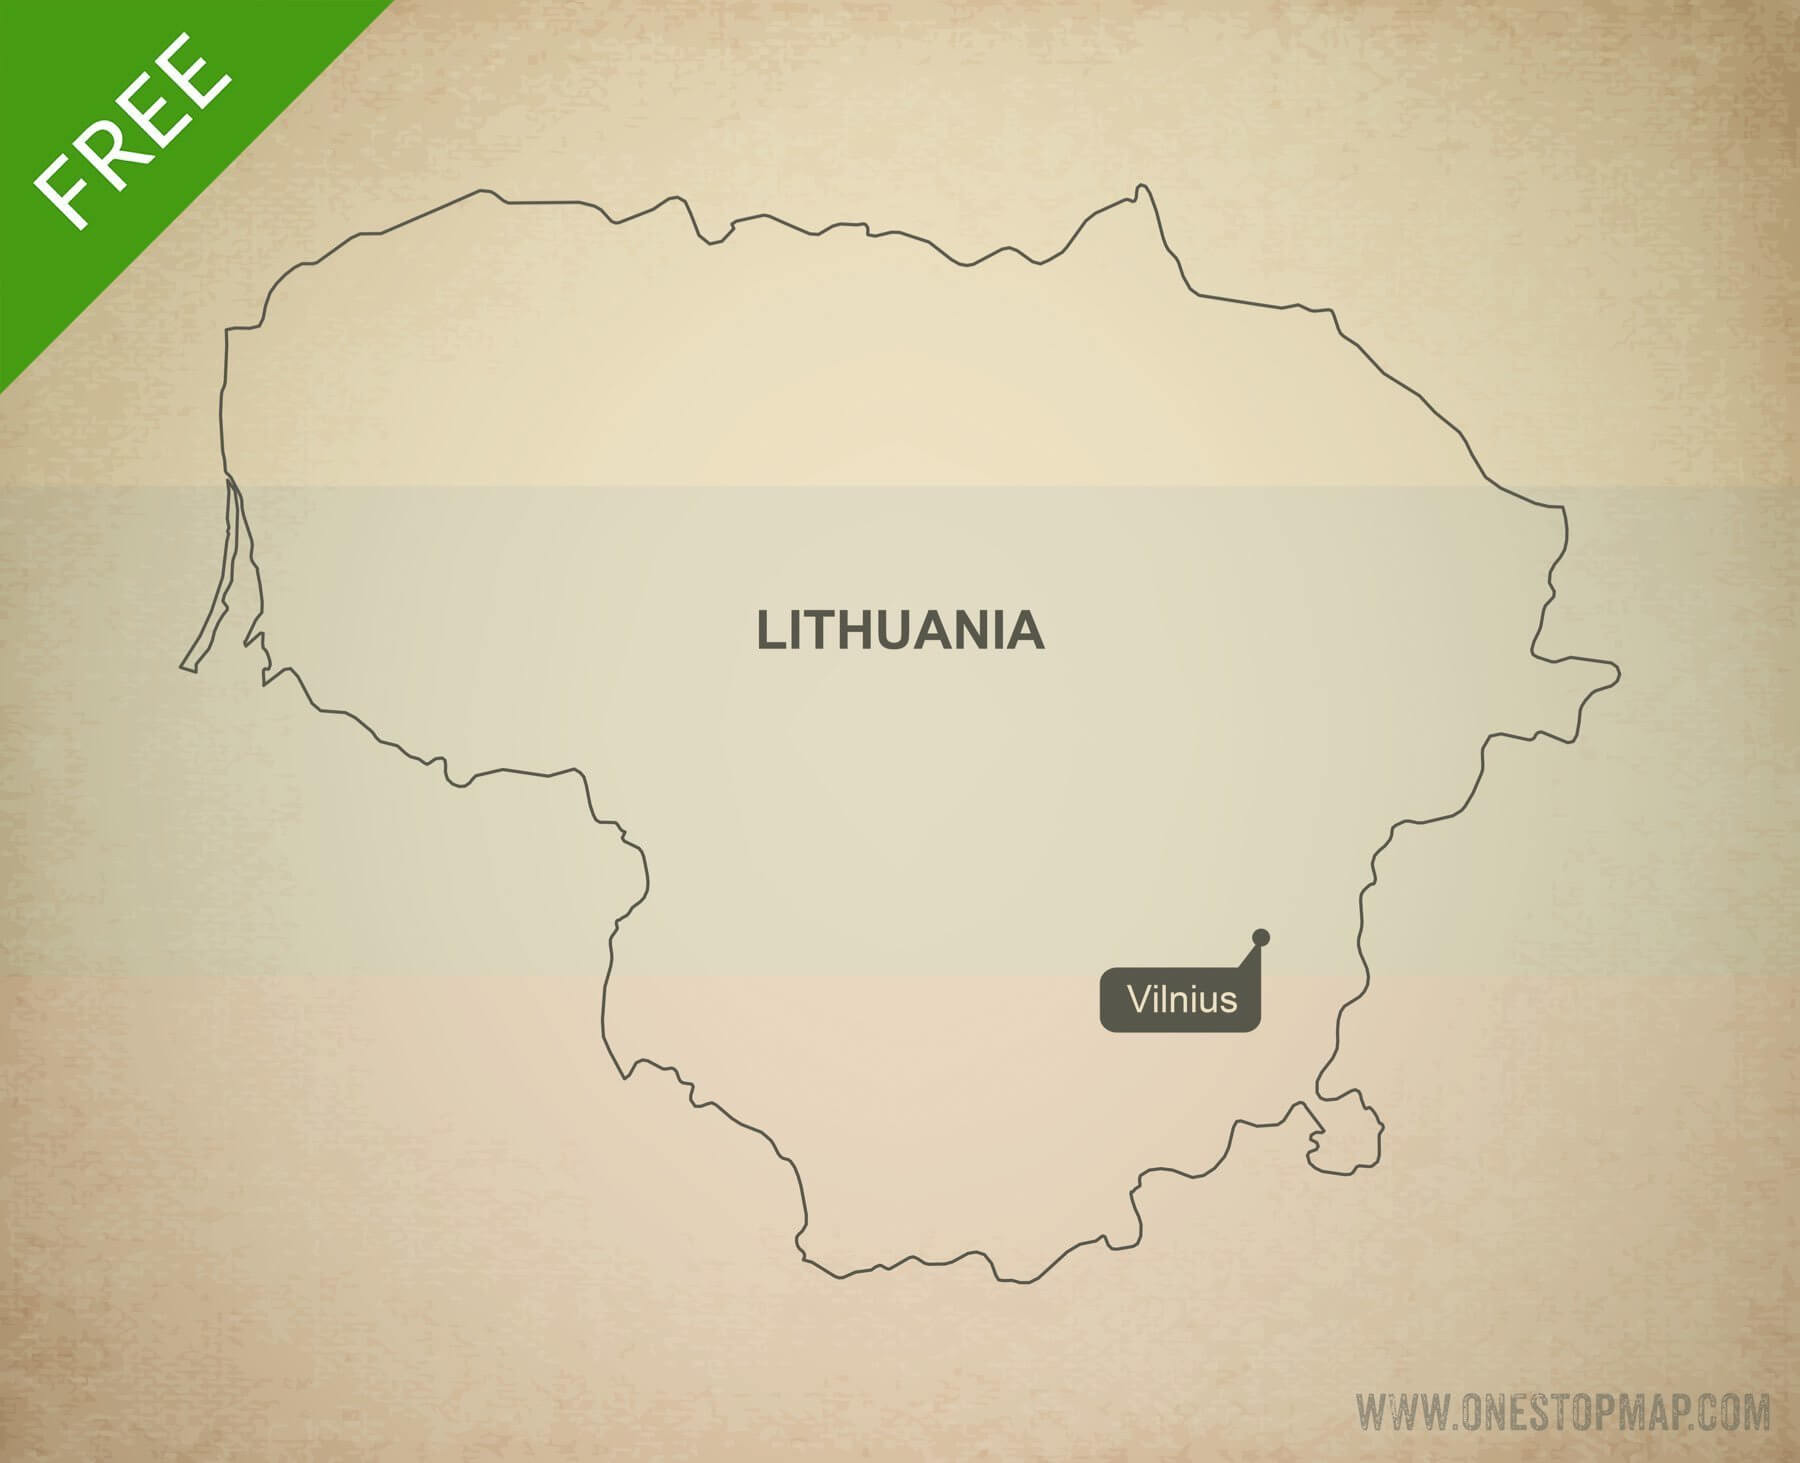 Free vector map of Lithuania outline